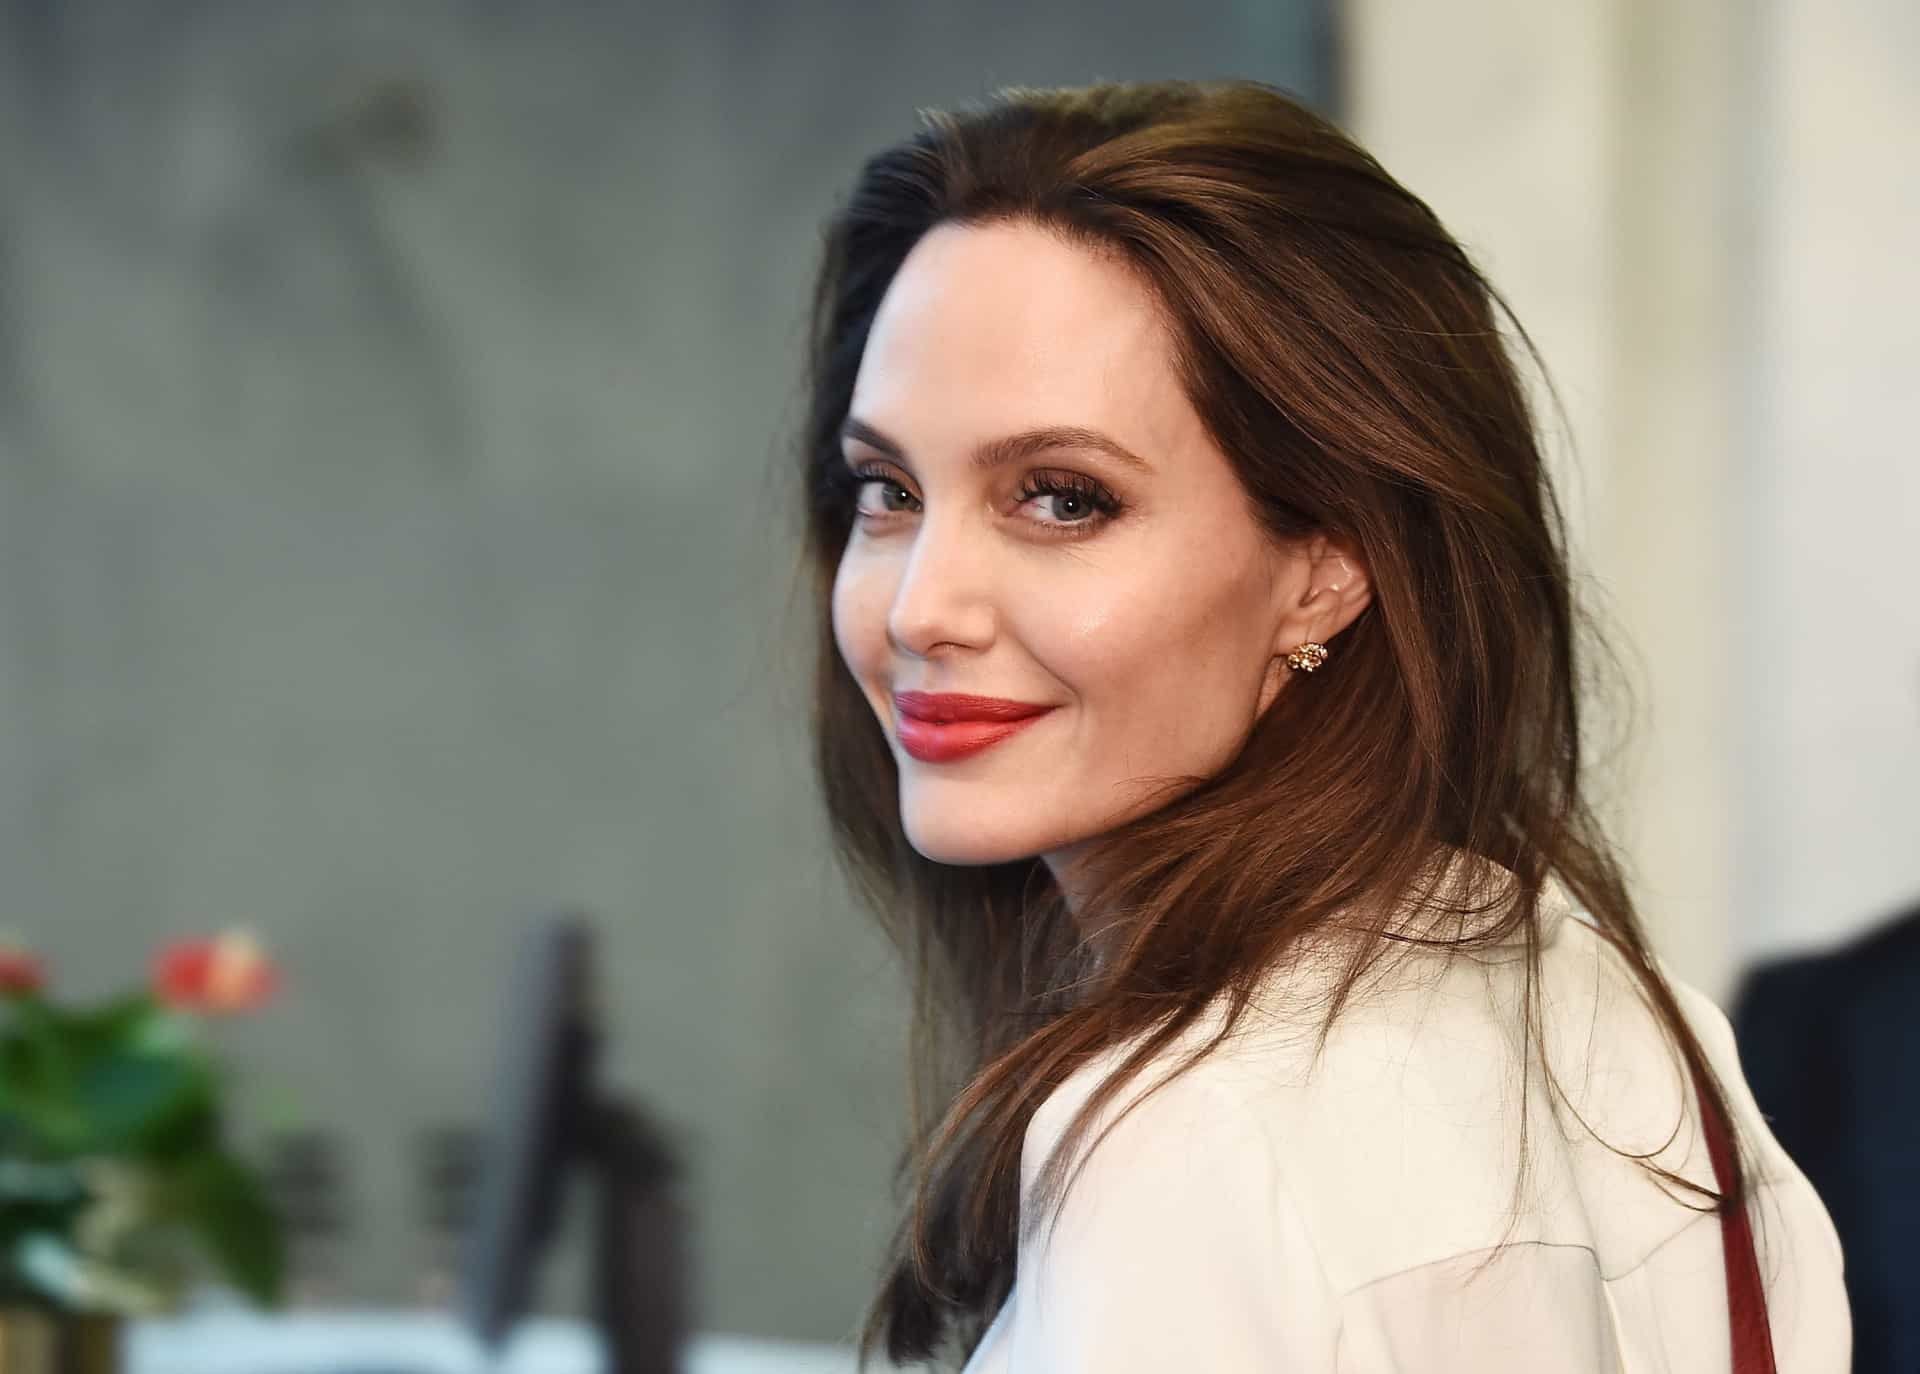 Hearts of gold: the most generous and charitable celebs